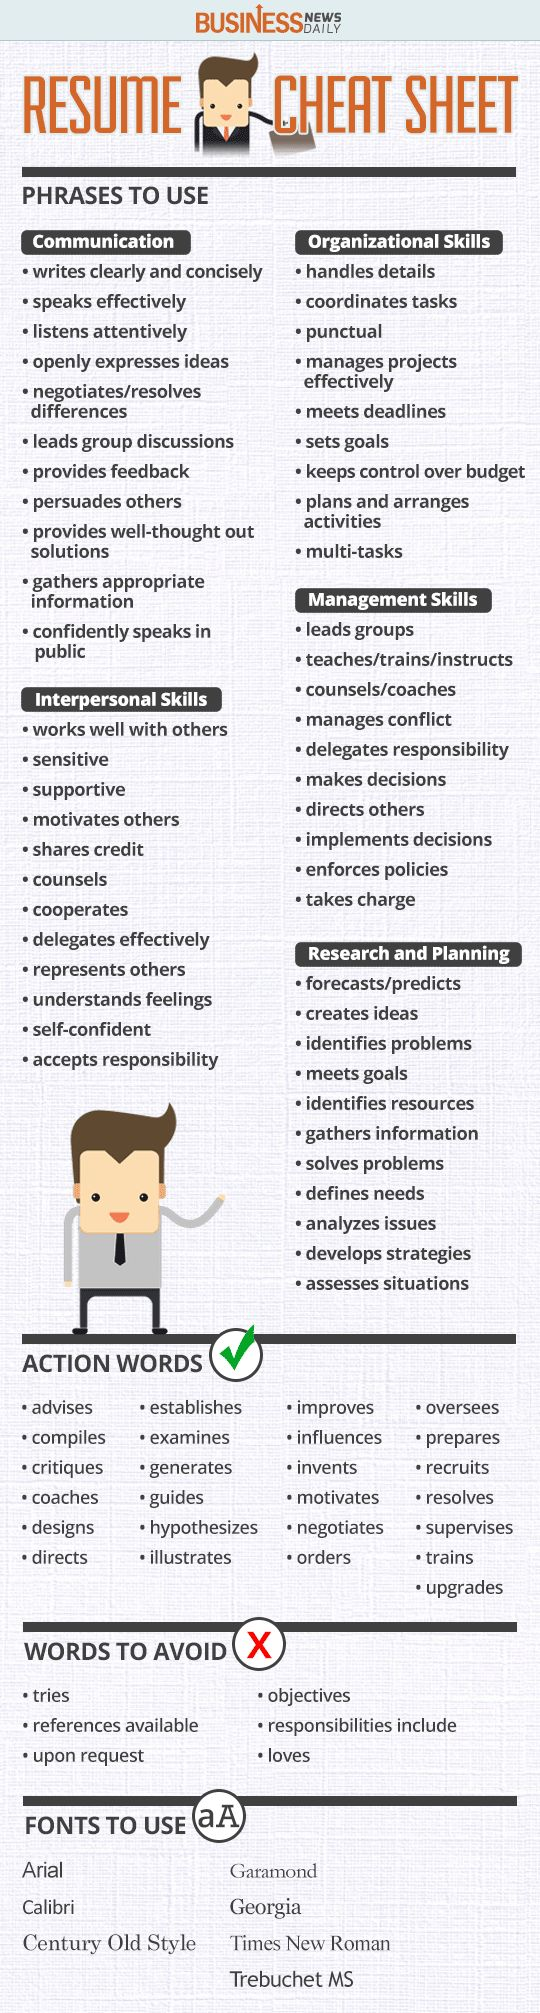 Opposenewapstandardsus  Surprising  Ideas About Resume On Pinterest  Cv Format Resume Cv And  With Fascinating Resume Cheat Sheet Infographic Andrews Almost Done With A Complete Unit On Employment Which With Comely Example Of A College Resume Also How To Write A Sales Resume In Addition My Perfect Resume Cover Letter And Summary For Resume Customer Service As Well As Medical Resume Writing Services Additionally Acting Resume Samples From Pinterestcom With Opposenewapstandardsus  Fascinating  Ideas About Resume On Pinterest  Cv Format Resume Cv And  With Comely Resume Cheat Sheet Infographic Andrews Almost Done With A Complete Unit On Employment Which And Surprising Example Of A College Resume Also How To Write A Sales Resume In Addition My Perfect Resume Cover Letter From Pinterestcom